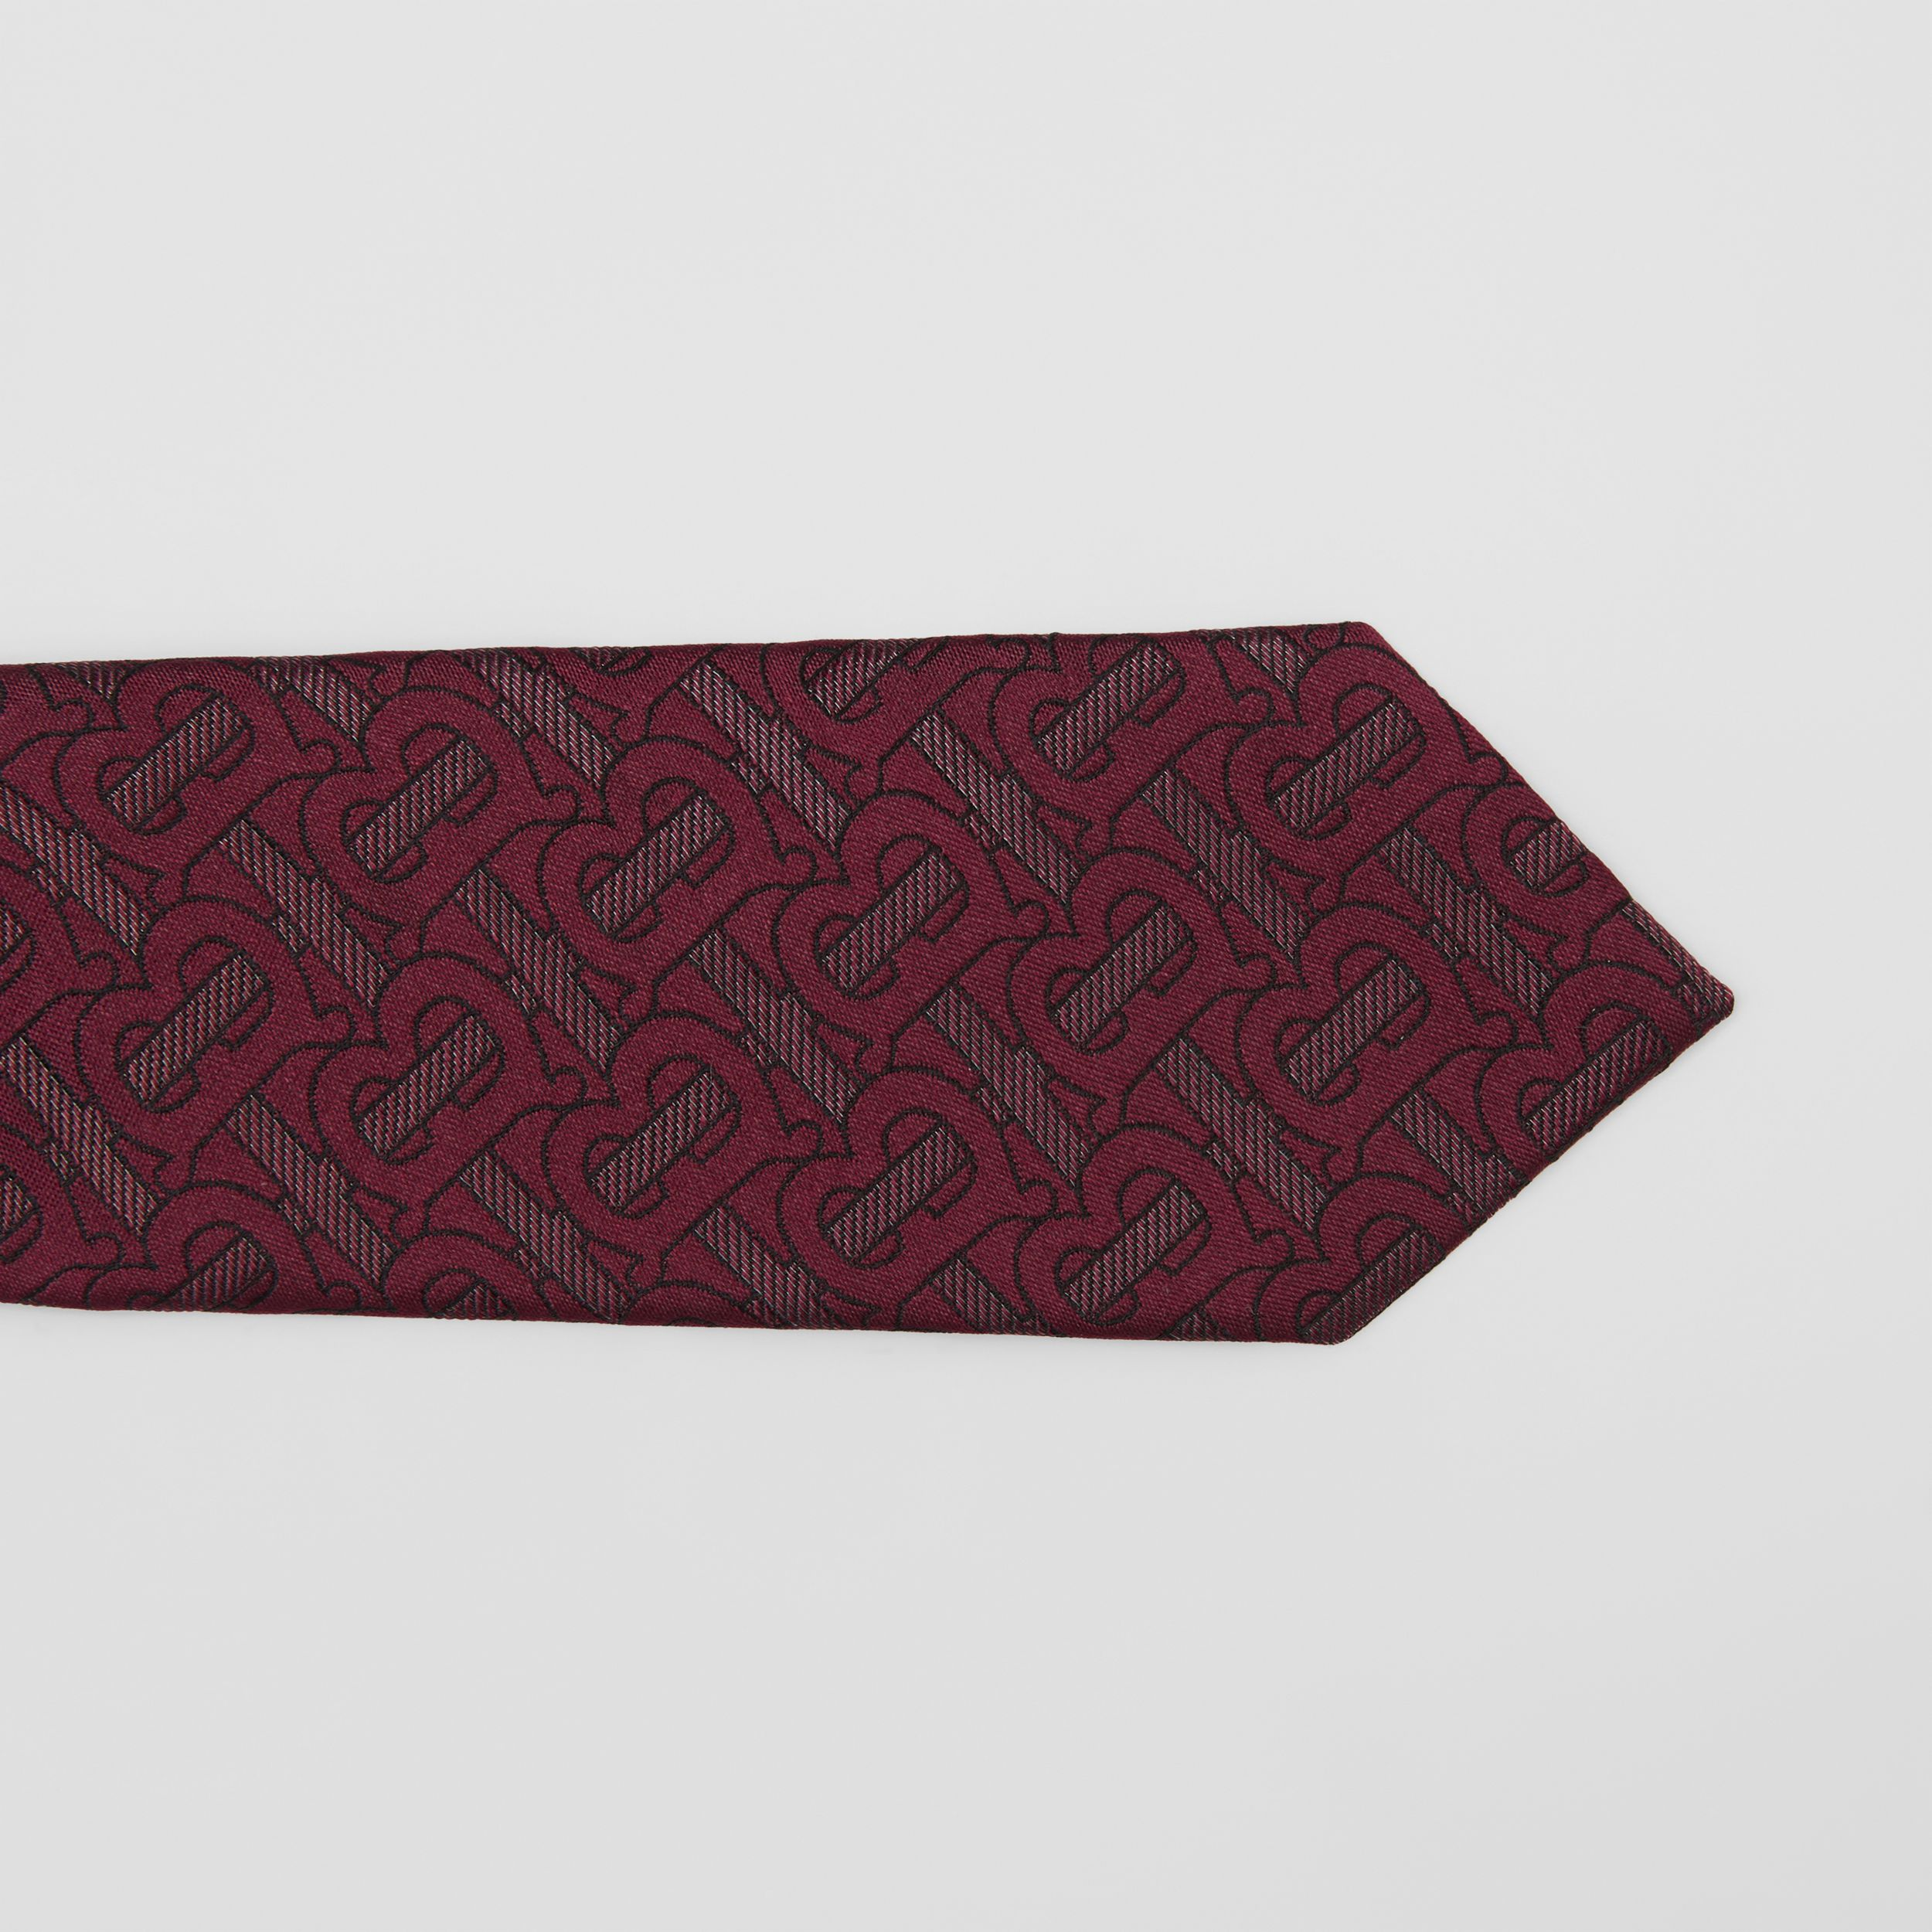 Classic Cut Monogram Silk Blend Jacquard Tie in Burgundy - Men | Burberry - 2